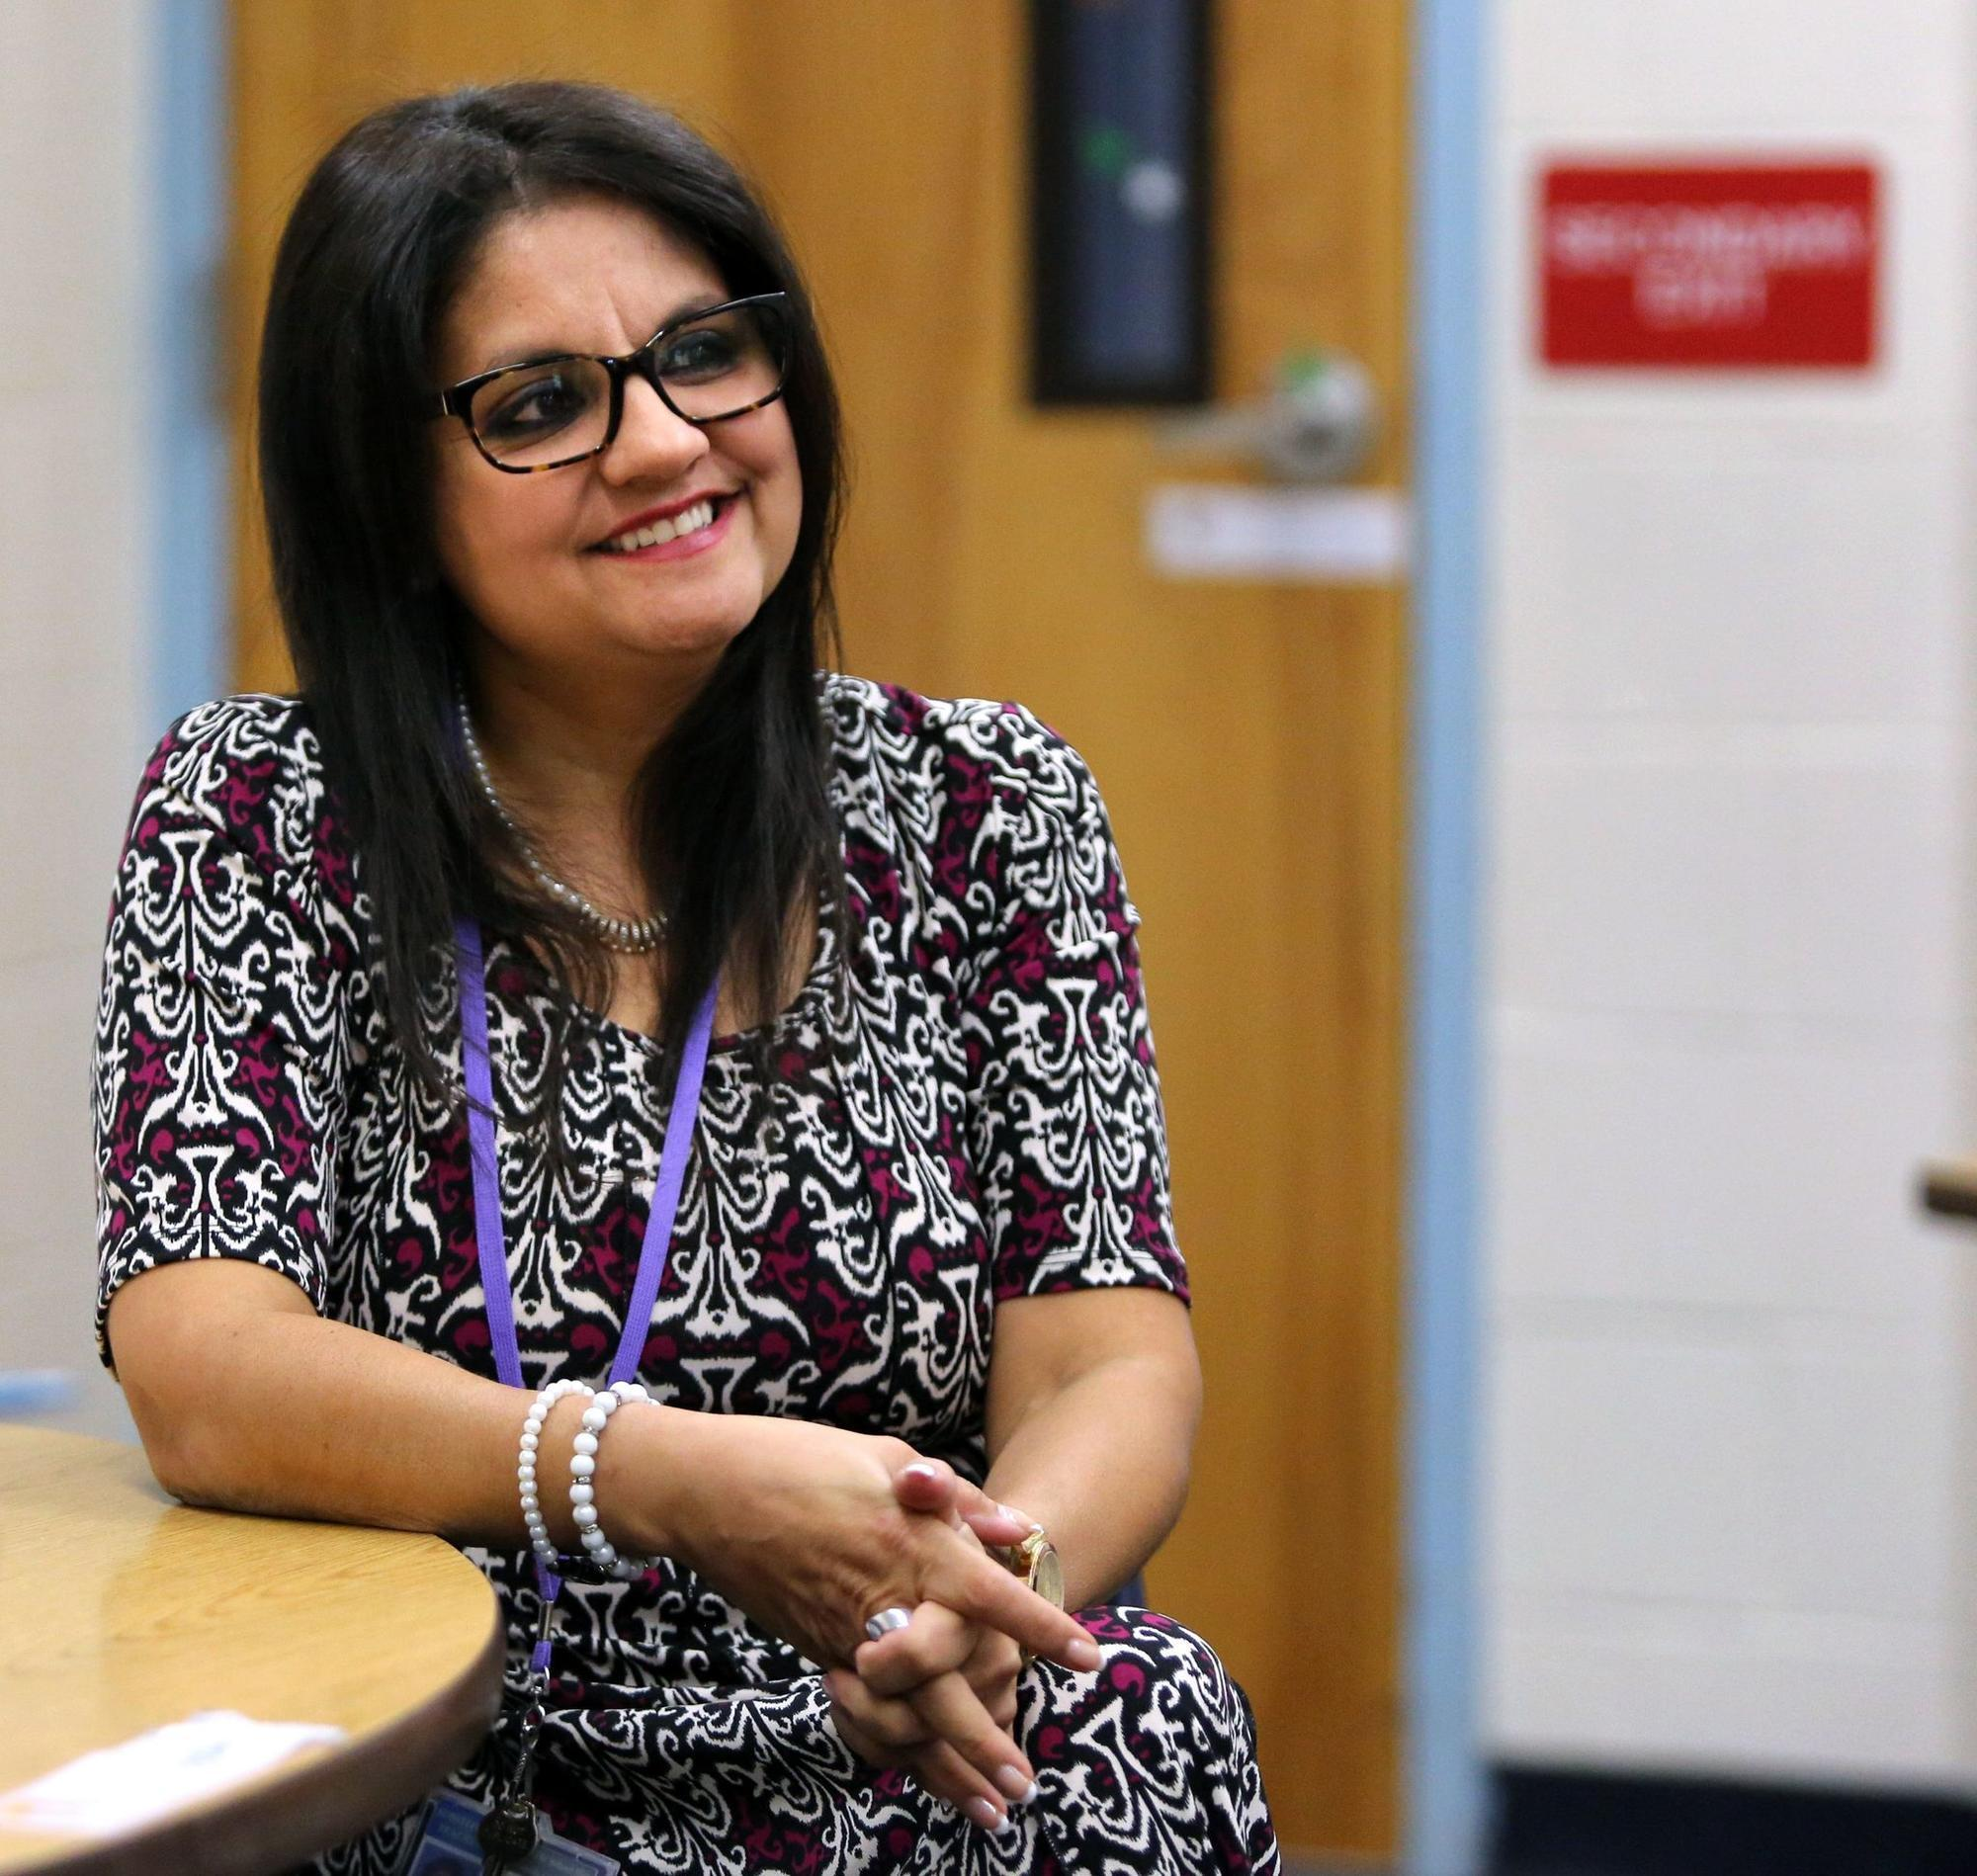 Puerto Rican teachers find homes in Central Florida classrooms